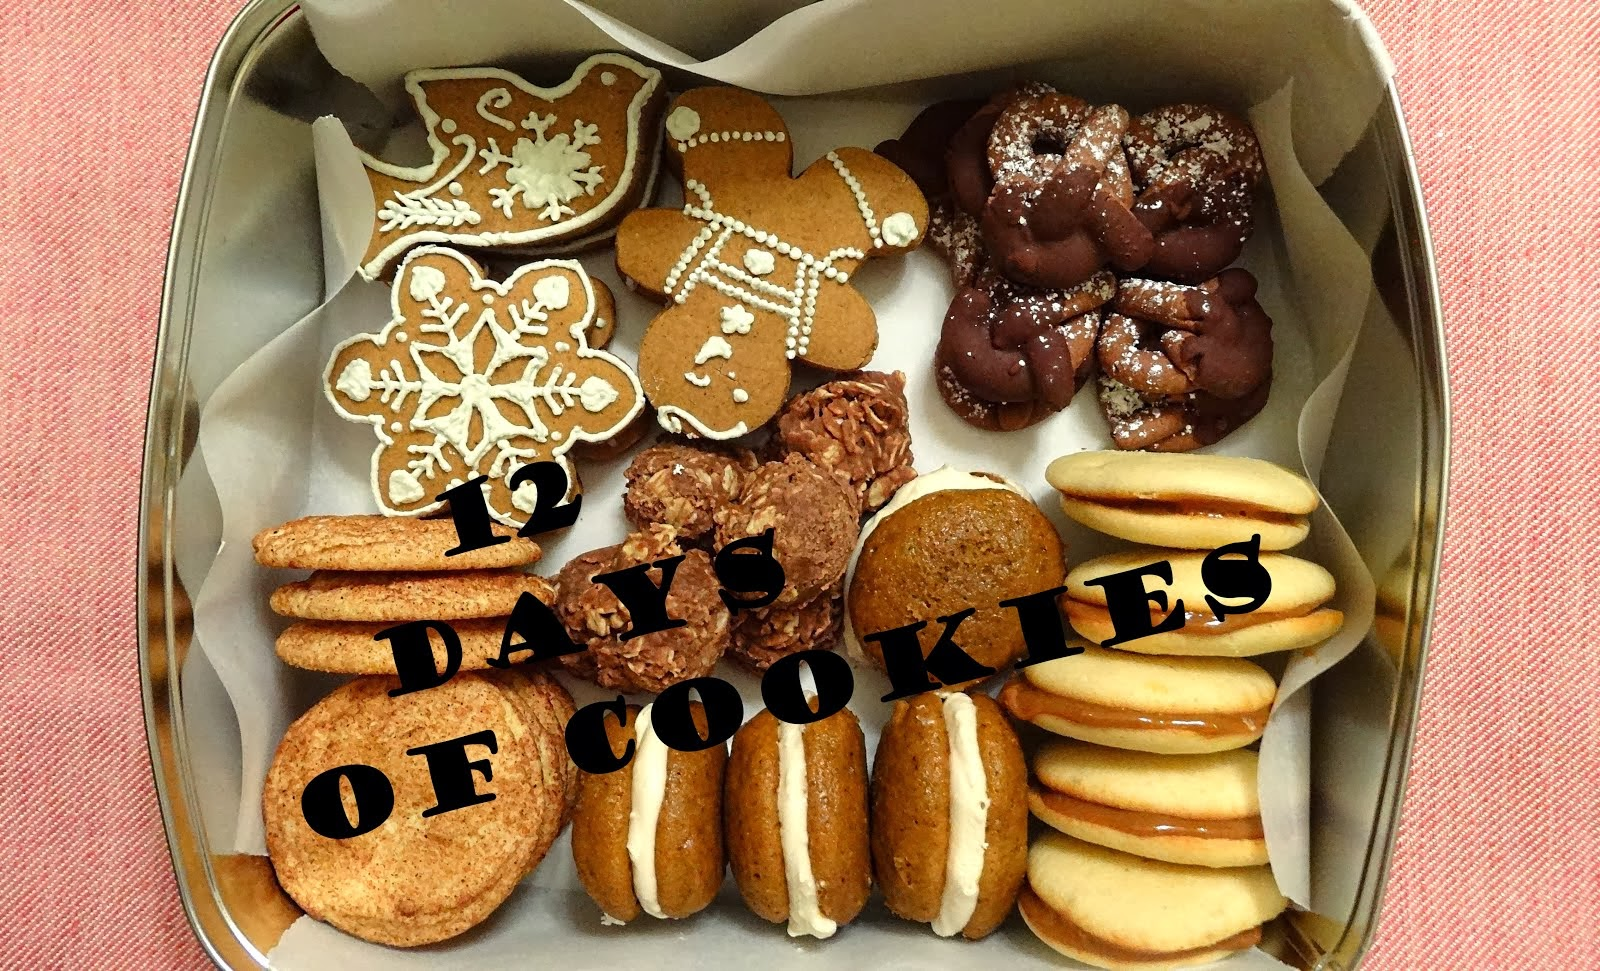 12 Days of Cookies 2013